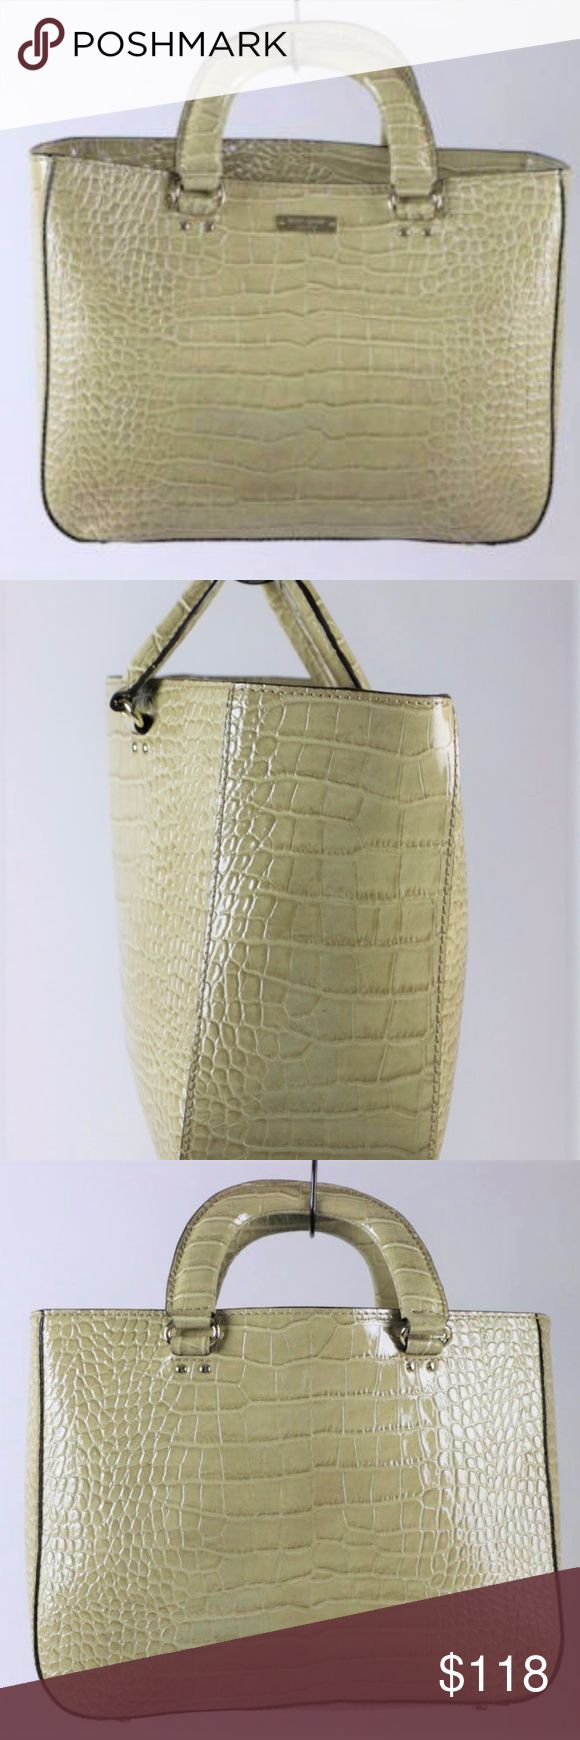 """KATE SPADE Embossed Crocodile Patent Leather Cream KATE SPADE EXCELLENT CLEAN CONDITION!!!  - 100% authentic - crocodile leather - cream color - medium size - measures H 10in x L 9.5 x W 4.5 -strap drop: 3in - satchel, handbag - gold hardware marked """"Kate Spade"""" - twin leather handles - interior has one compartment with multiple pockets; clean - inside magnetic snap and leather closure - leather is in excellent condition - shiny and nice - from a """"pet-free"""" and """"smoke-free"""" environment kate…"""